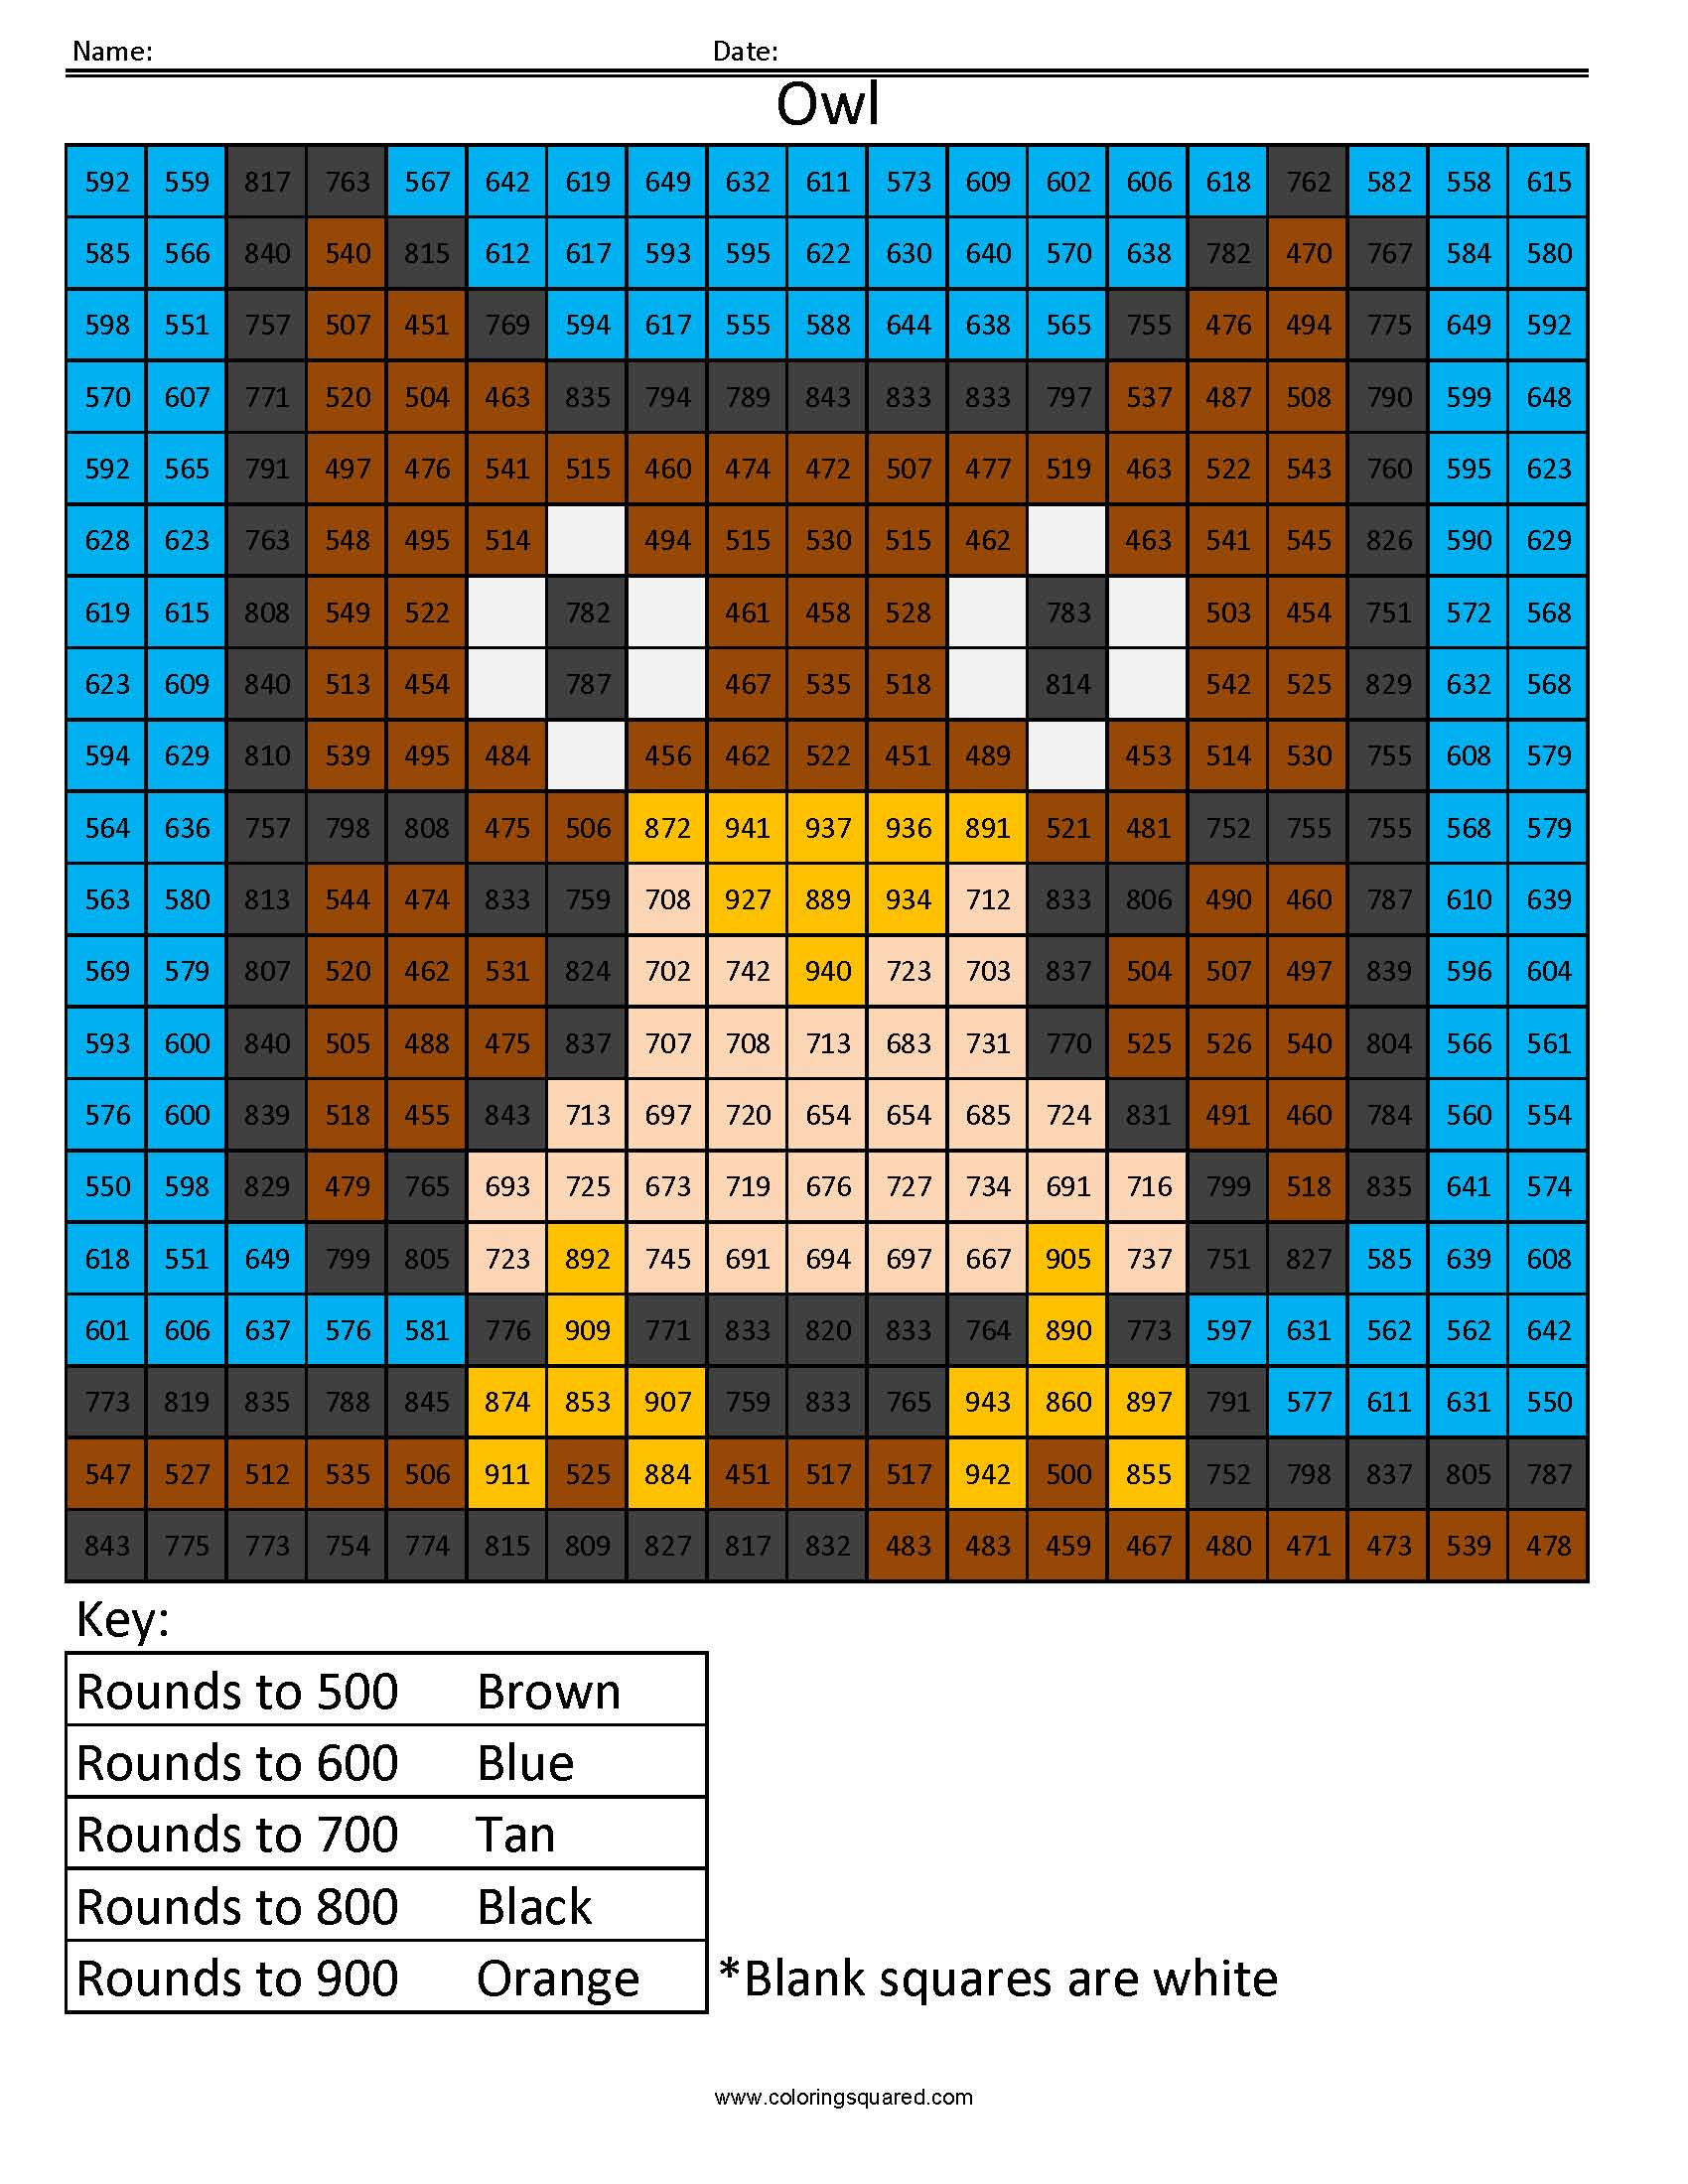 RH5 Owl Color free rounding math worksheets for kids - Coloring ...